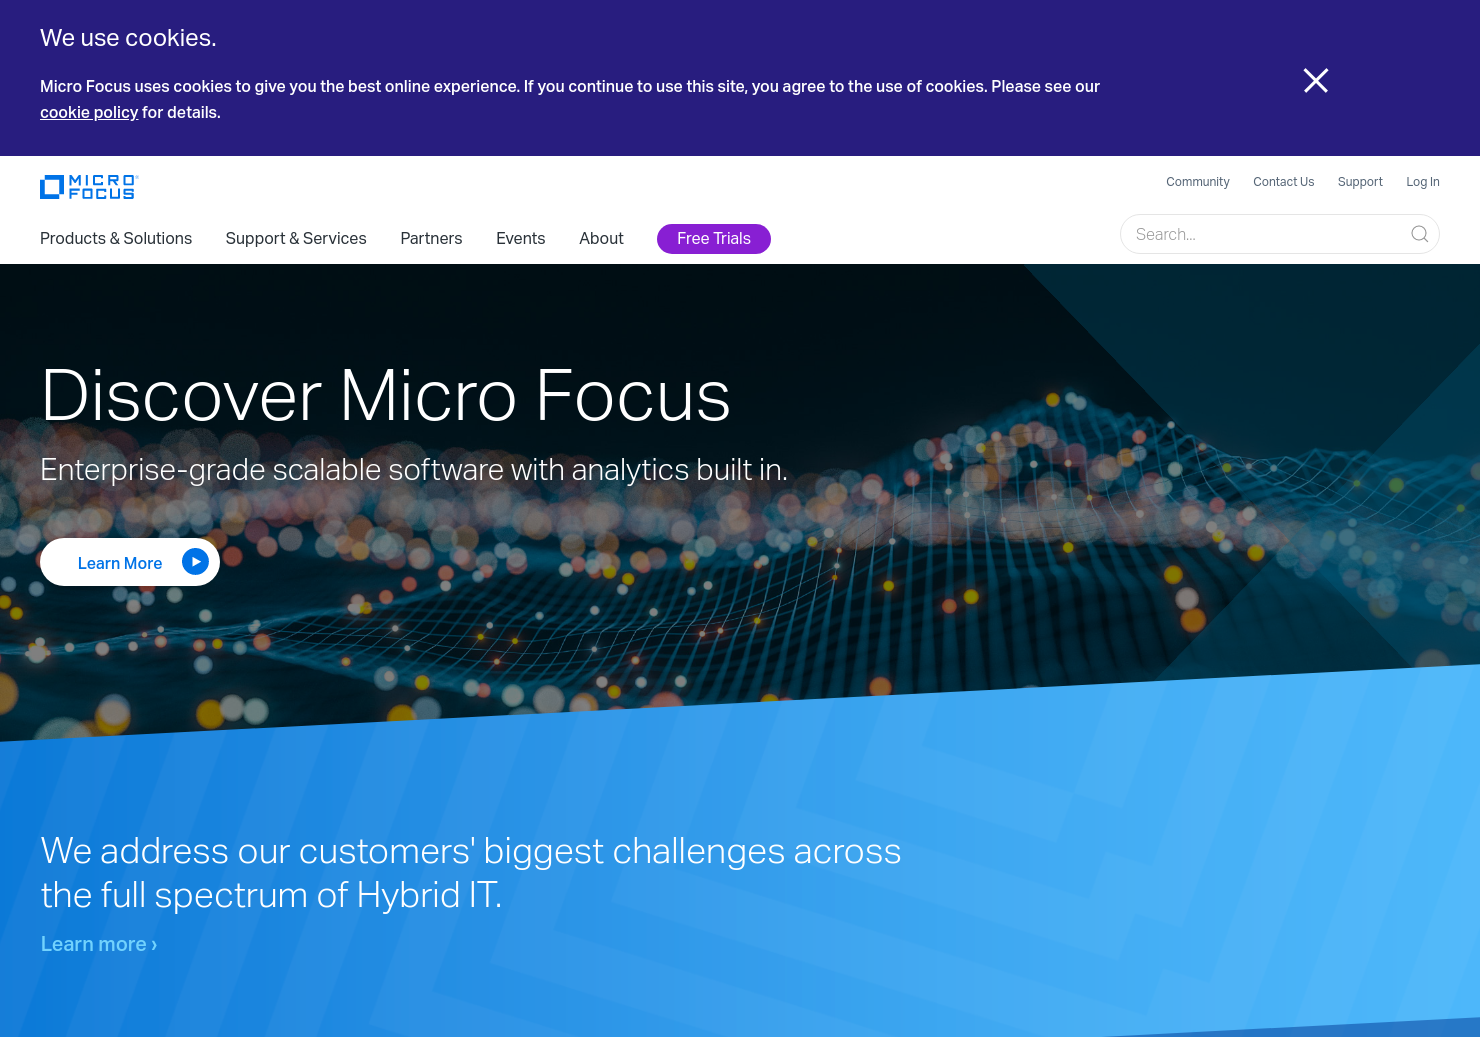 Micro Focus Home Page